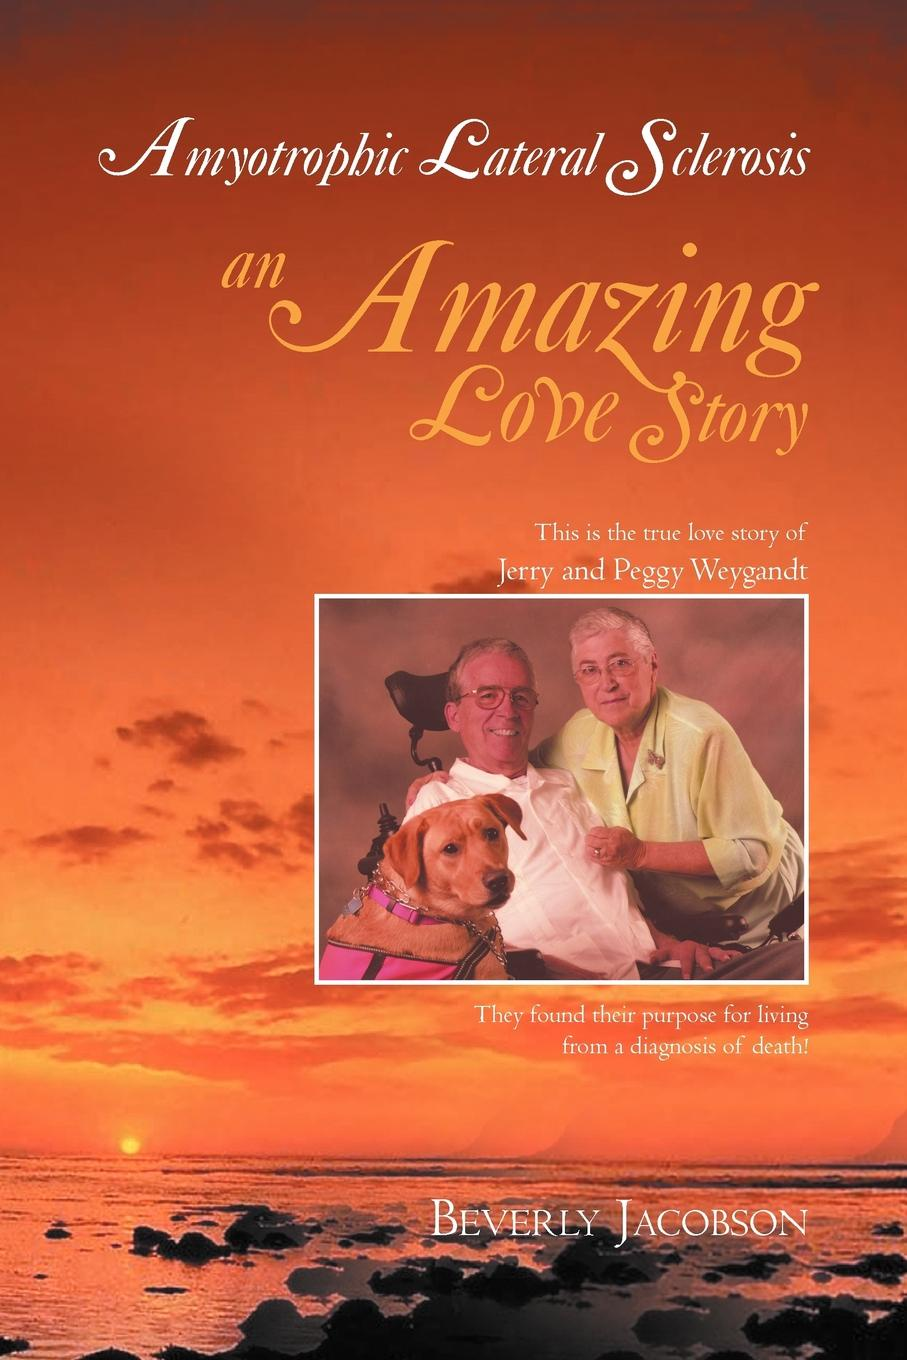 Beverly Jacobson Amyotrophic Lateral Sclerosis ___an Amazing Love Story dorothy stover amazing love diet